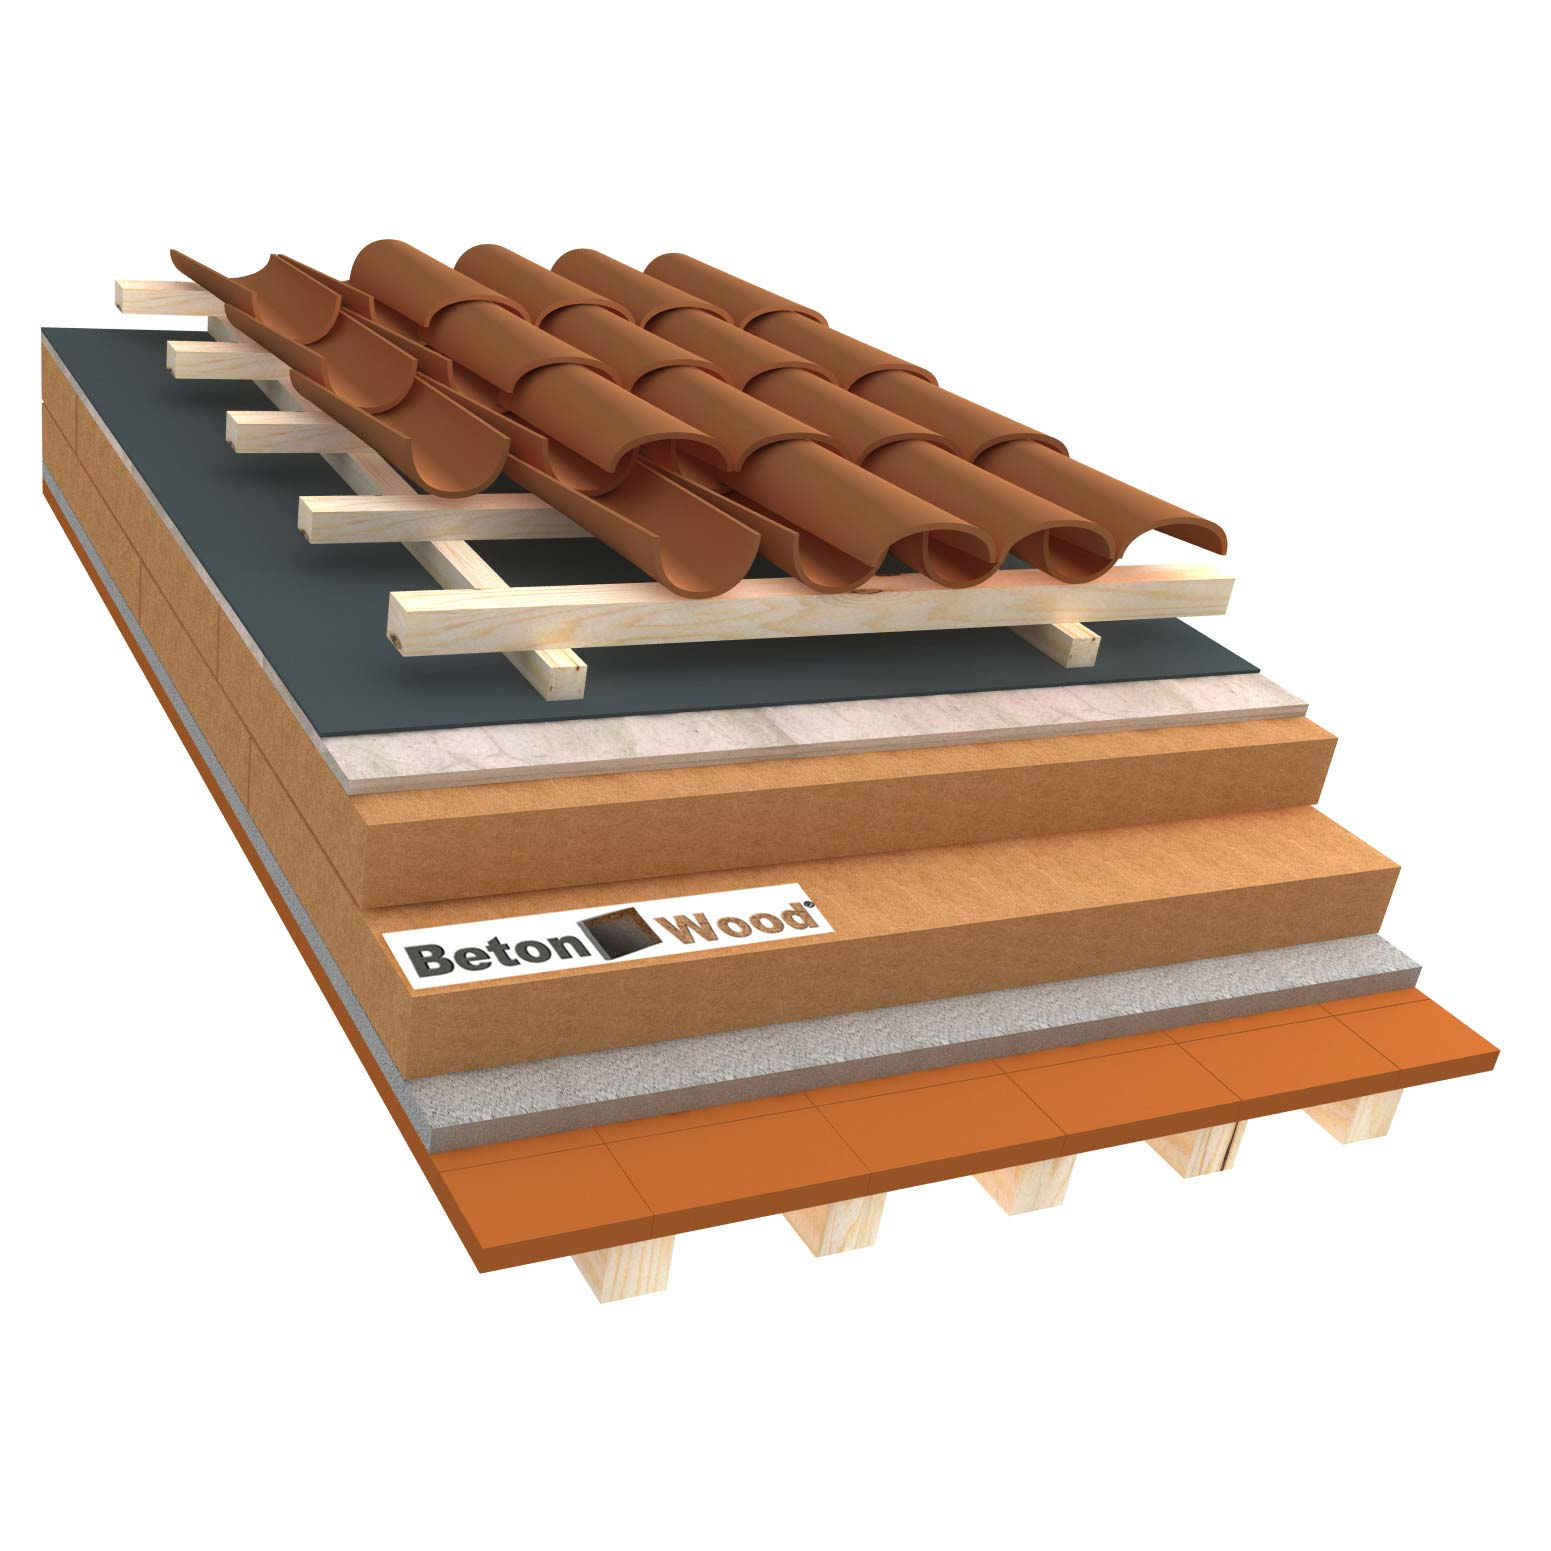 Ventilated roof with wood fibre board Special and cement bonded particle boards on terracotta tiles